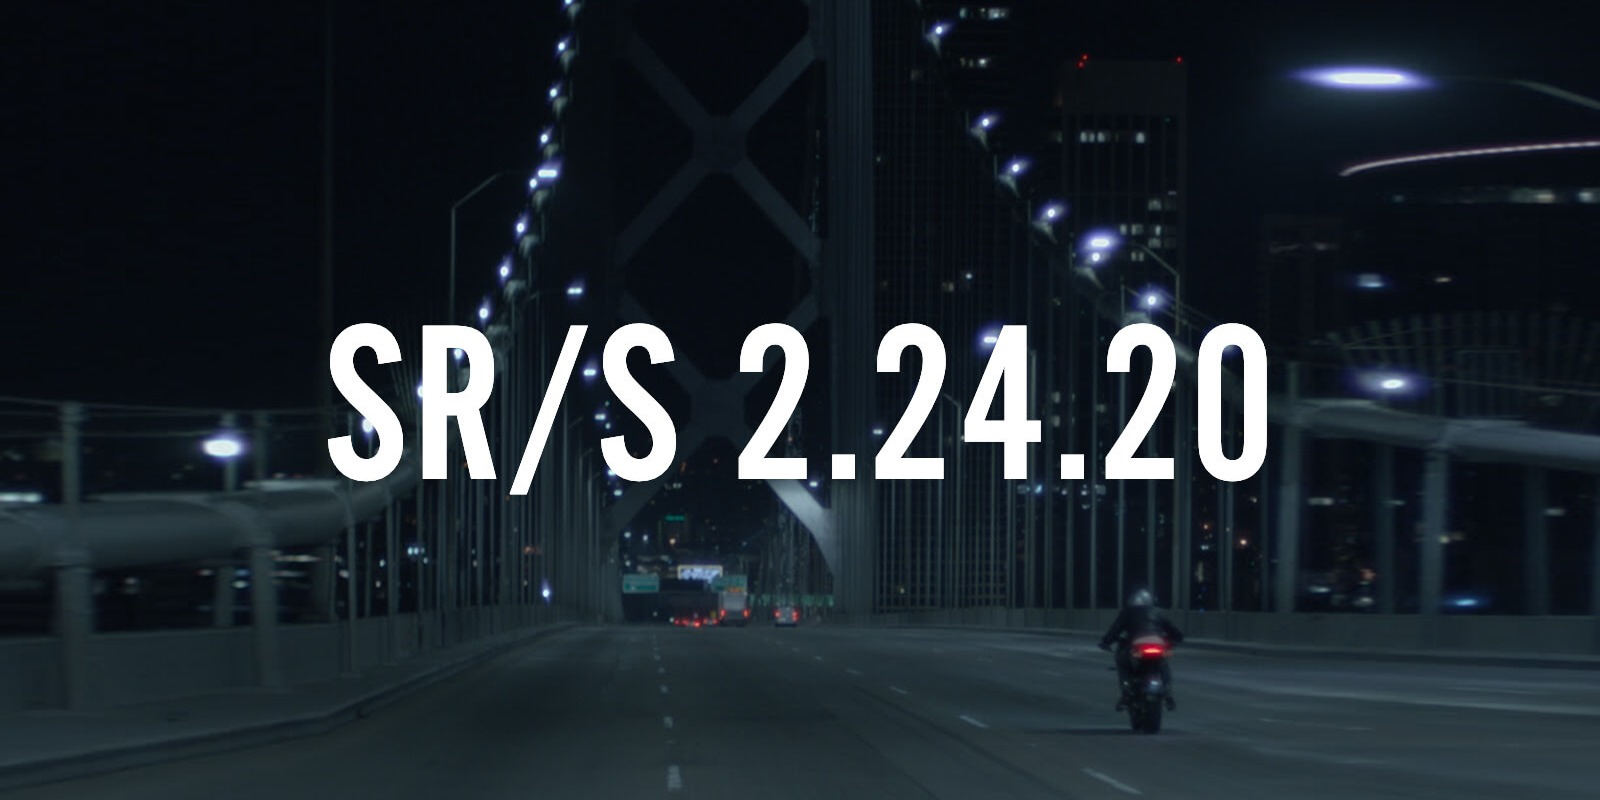 Zero announces the SR/S, a new electric motorcycle model coming next month